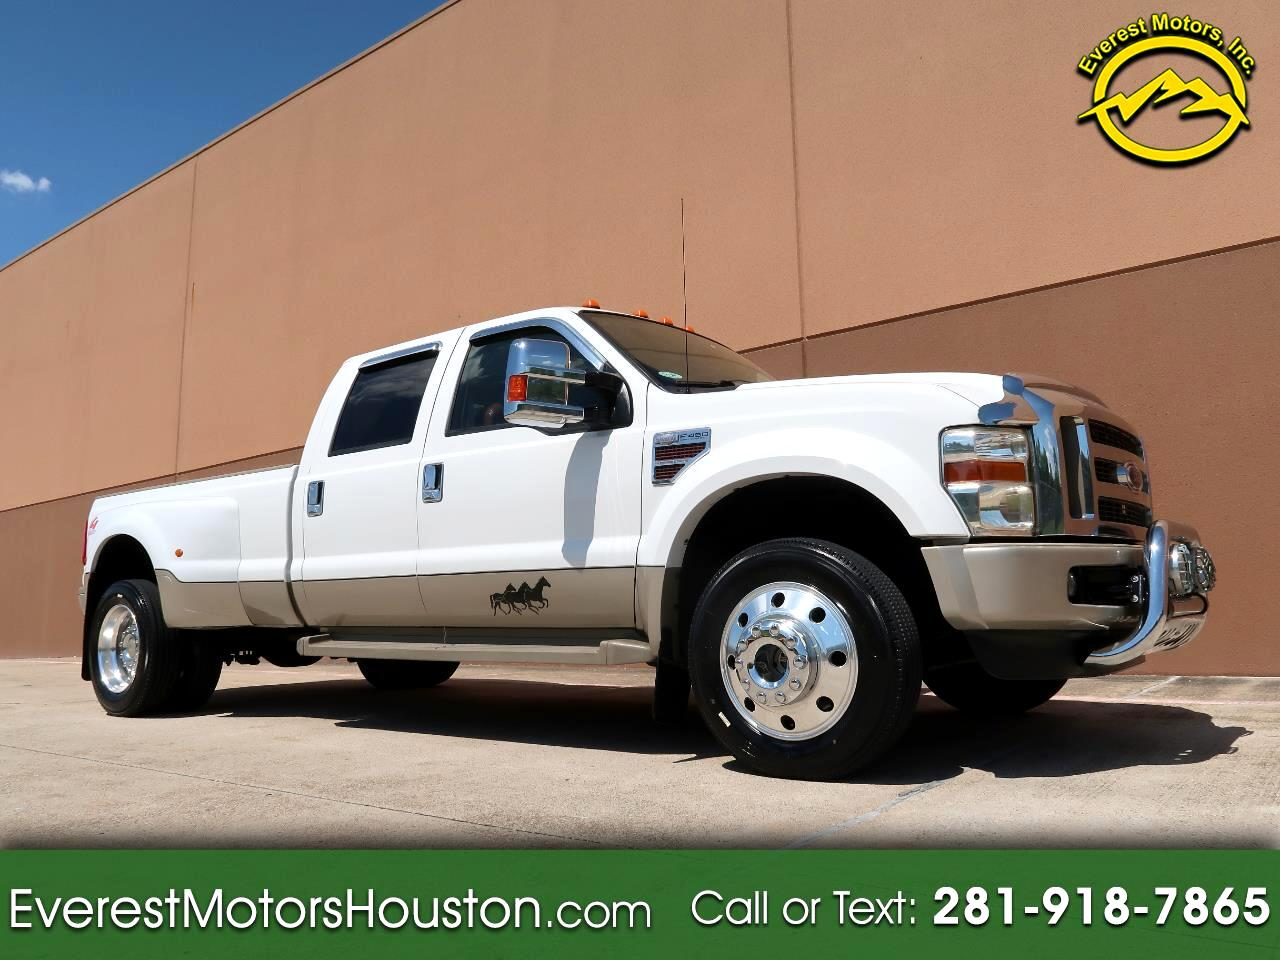 2008 Ford F-450 SD KING RANCH CREW CAB LWB DRW 4WD DIESEL